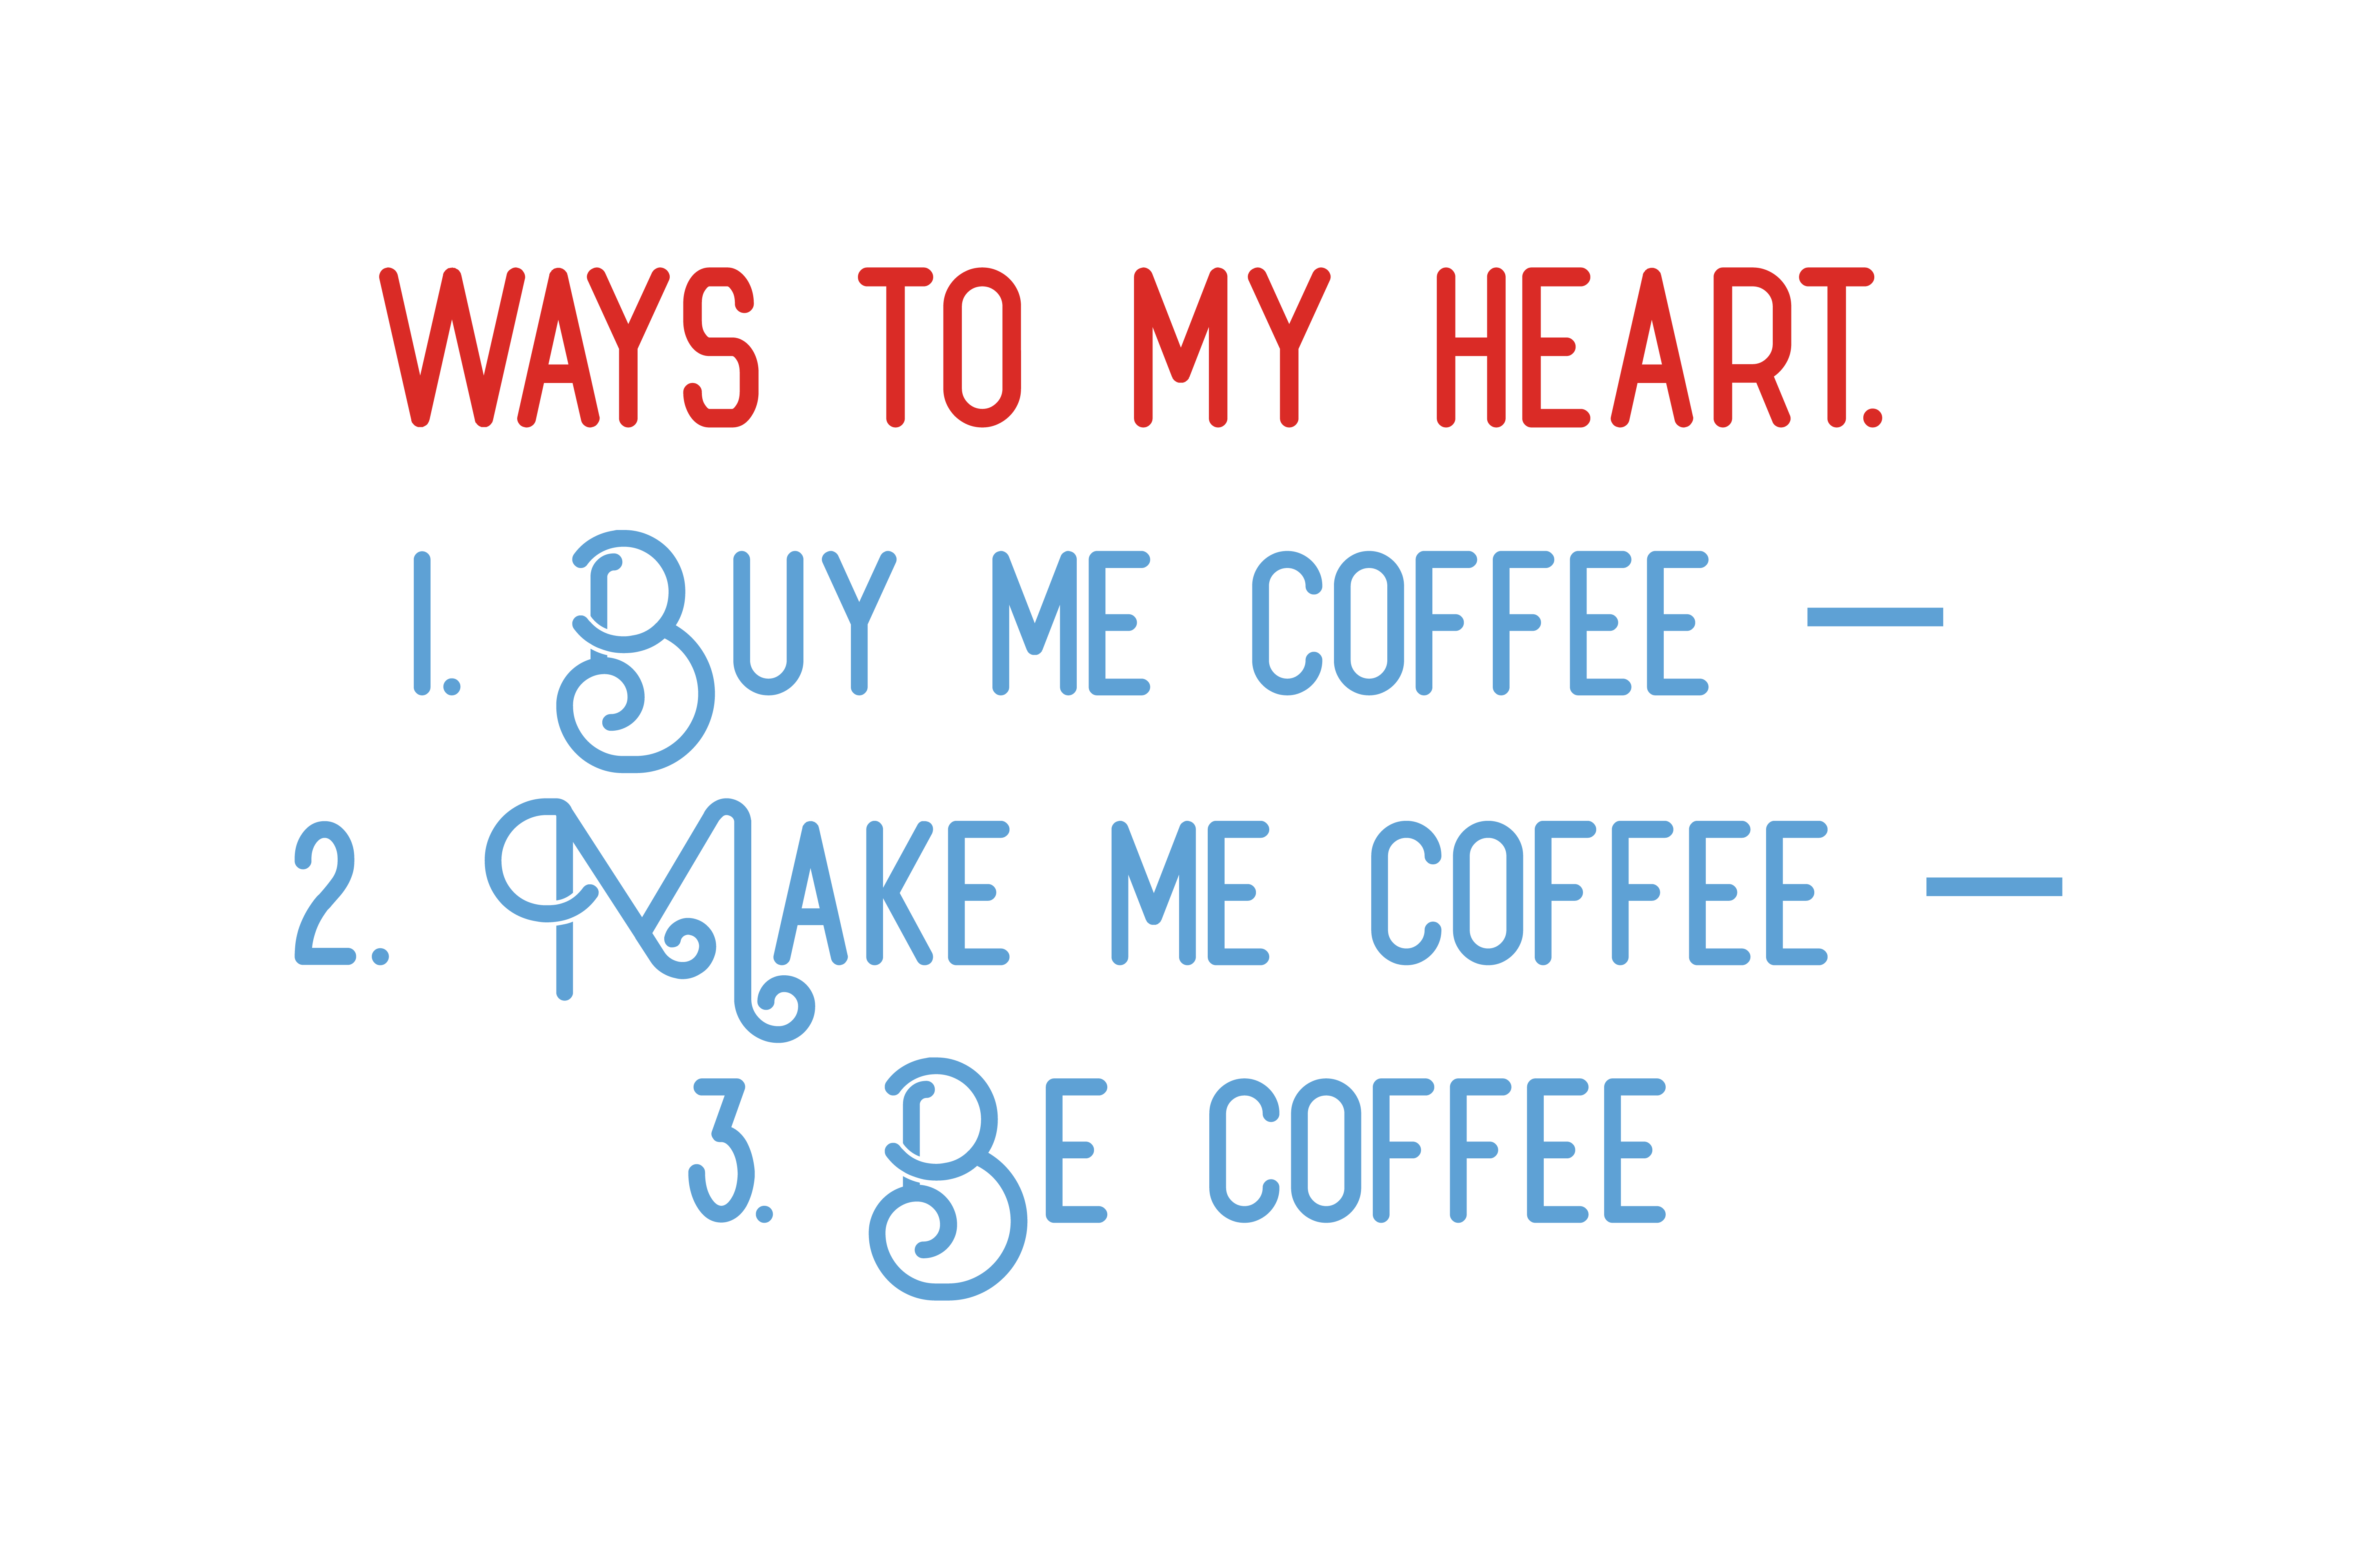 Download Free Ways To My Heart Graphic By Thelucky Creative Fabrica for Cricut Explore, Silhouette and other cutting machines.